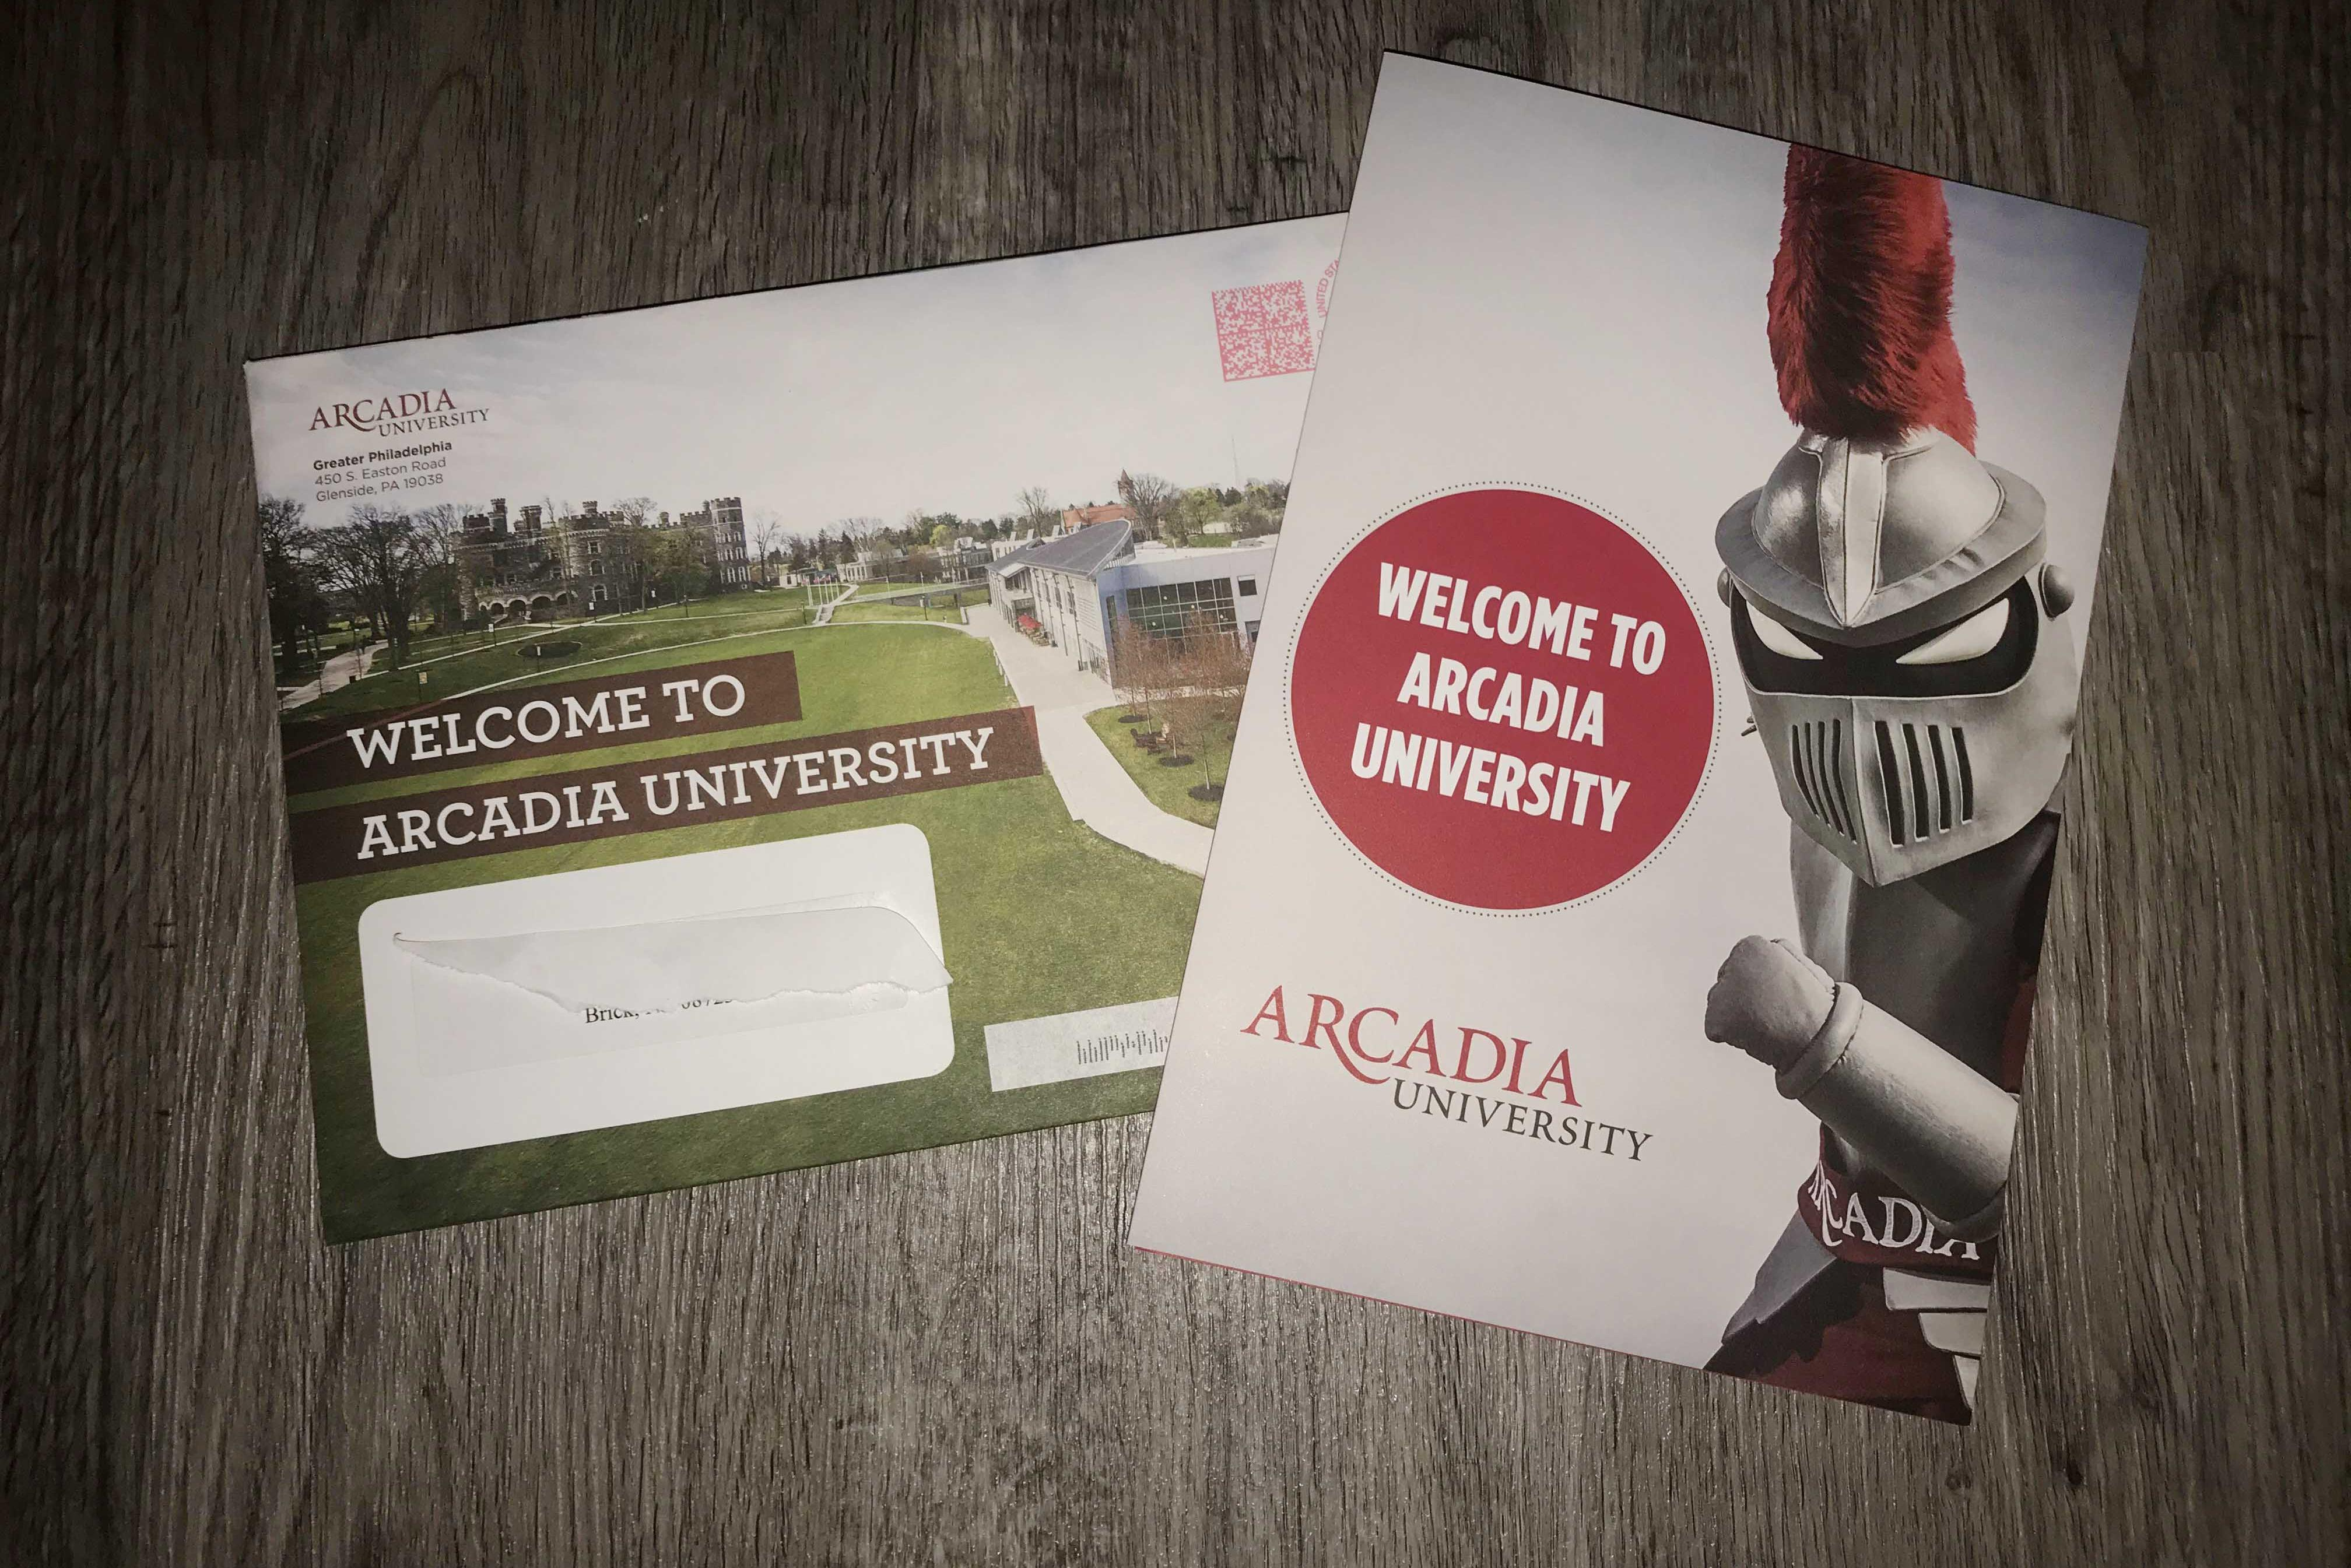 Welcome to Arcadia letter and brochure sitting on a table.